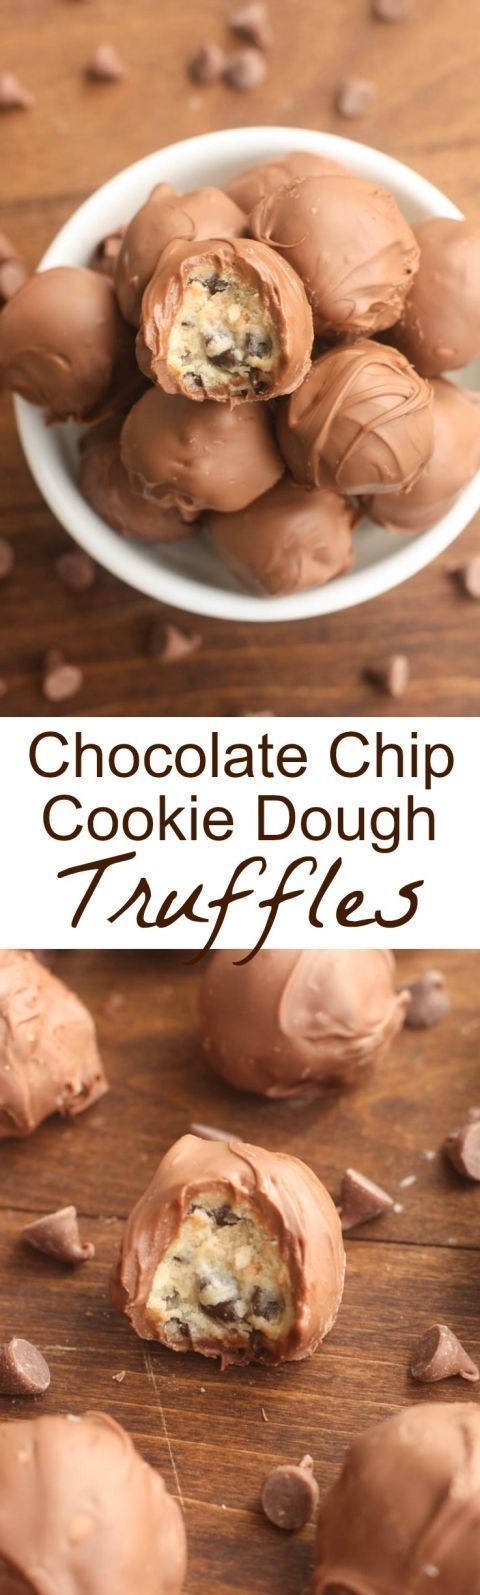 Chocolate Chip Cookie Dough Truffles Recipe via Tastes Better From Scratch - A simple egg-free cookie dough dipped in melted chocolate! These bite-size treats are easy and delicious! The BEST Bite Size Dessert Recipes - Mini, Individual, Yummy Treats, Perfectly Pretty for Your Baby and Bridal Showers, Birthday Party Dessert Tables and Holiday Celebrations!